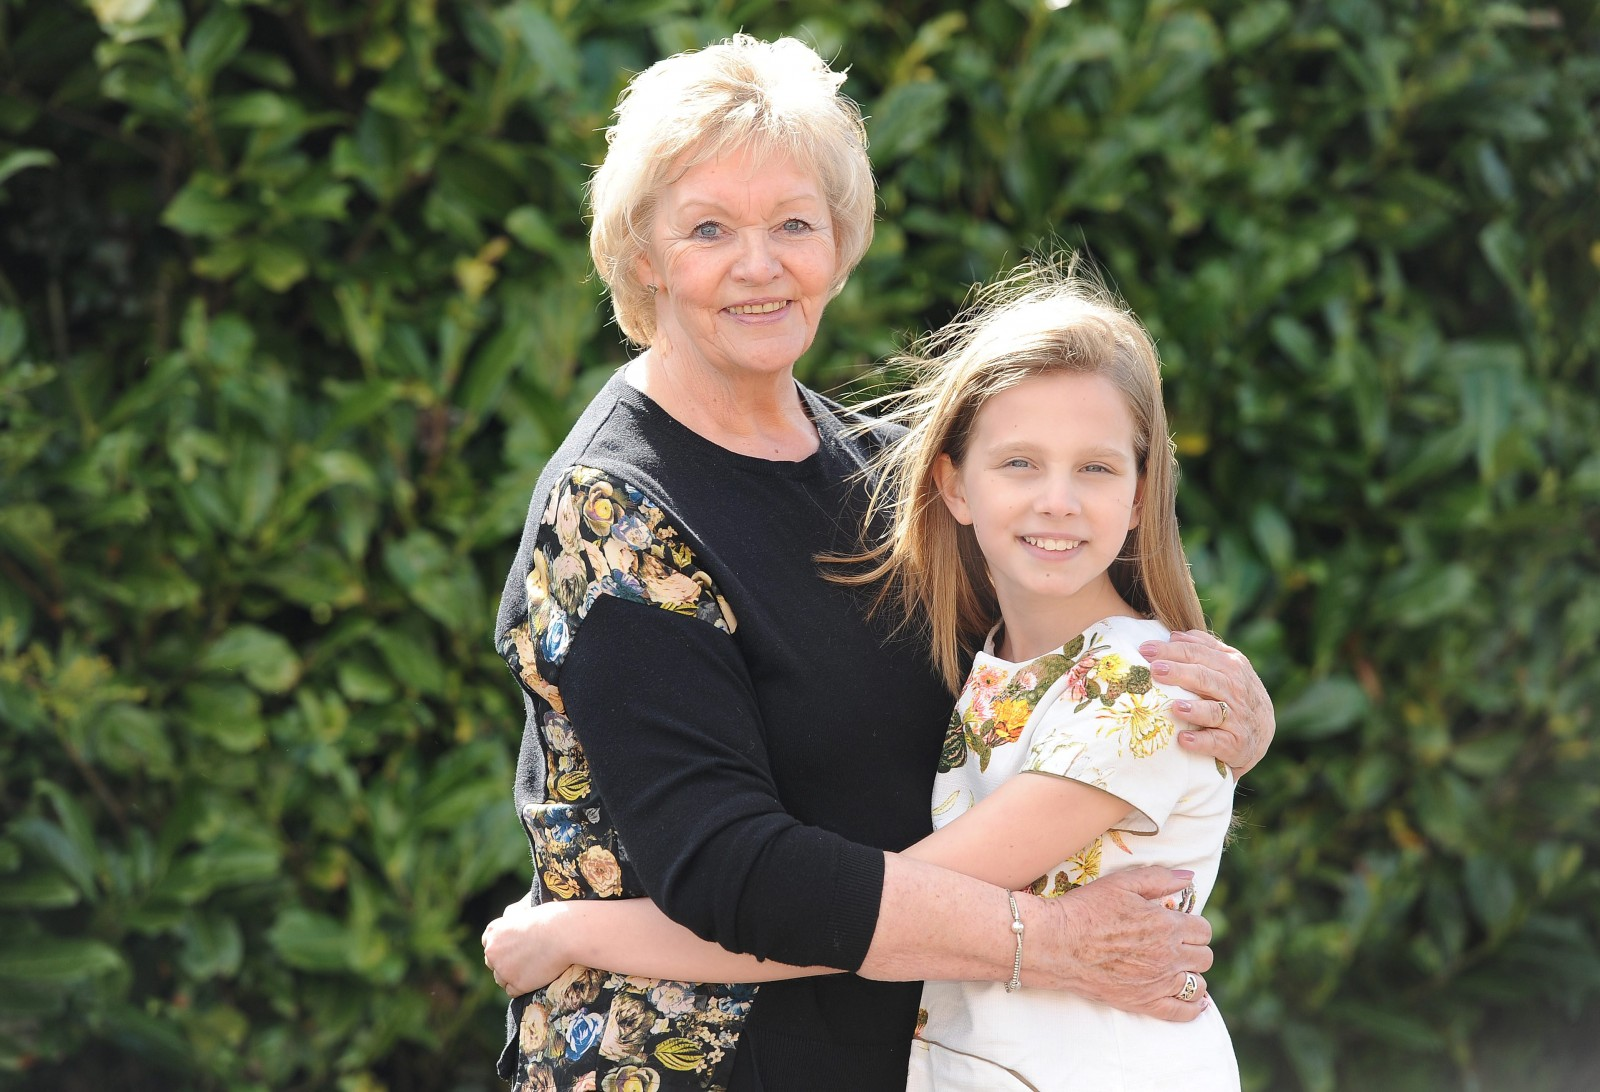 The incredible granny who diagnosed her granddaughter's rare cancer with a HUG